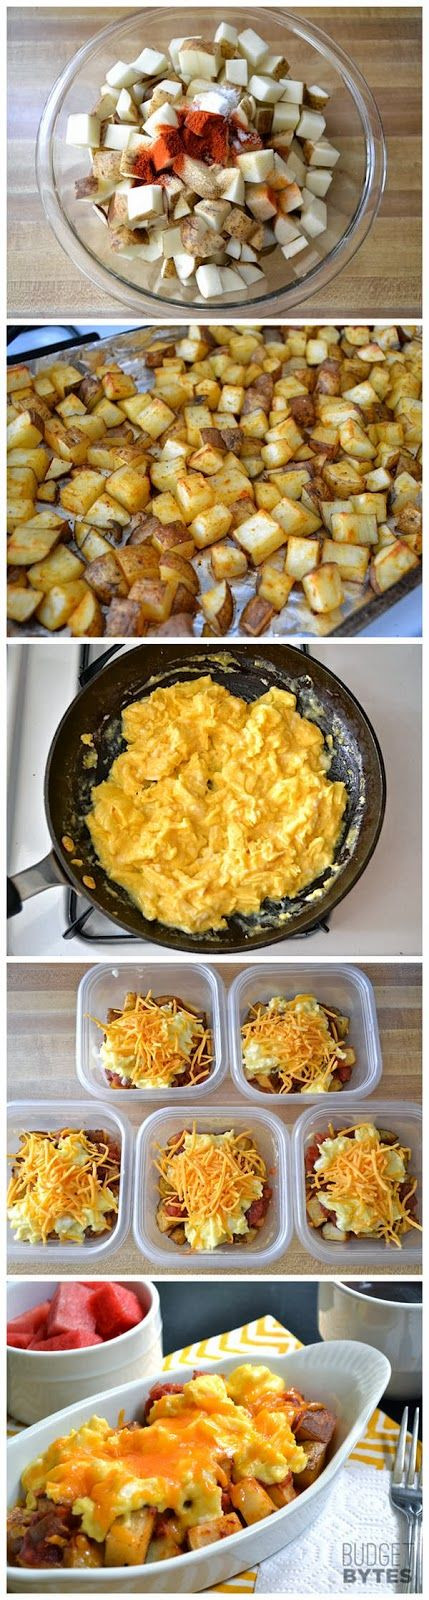 Healthy Fast Food Breakfast  1000 ideas about Fast Food Breakfast on Pinterest